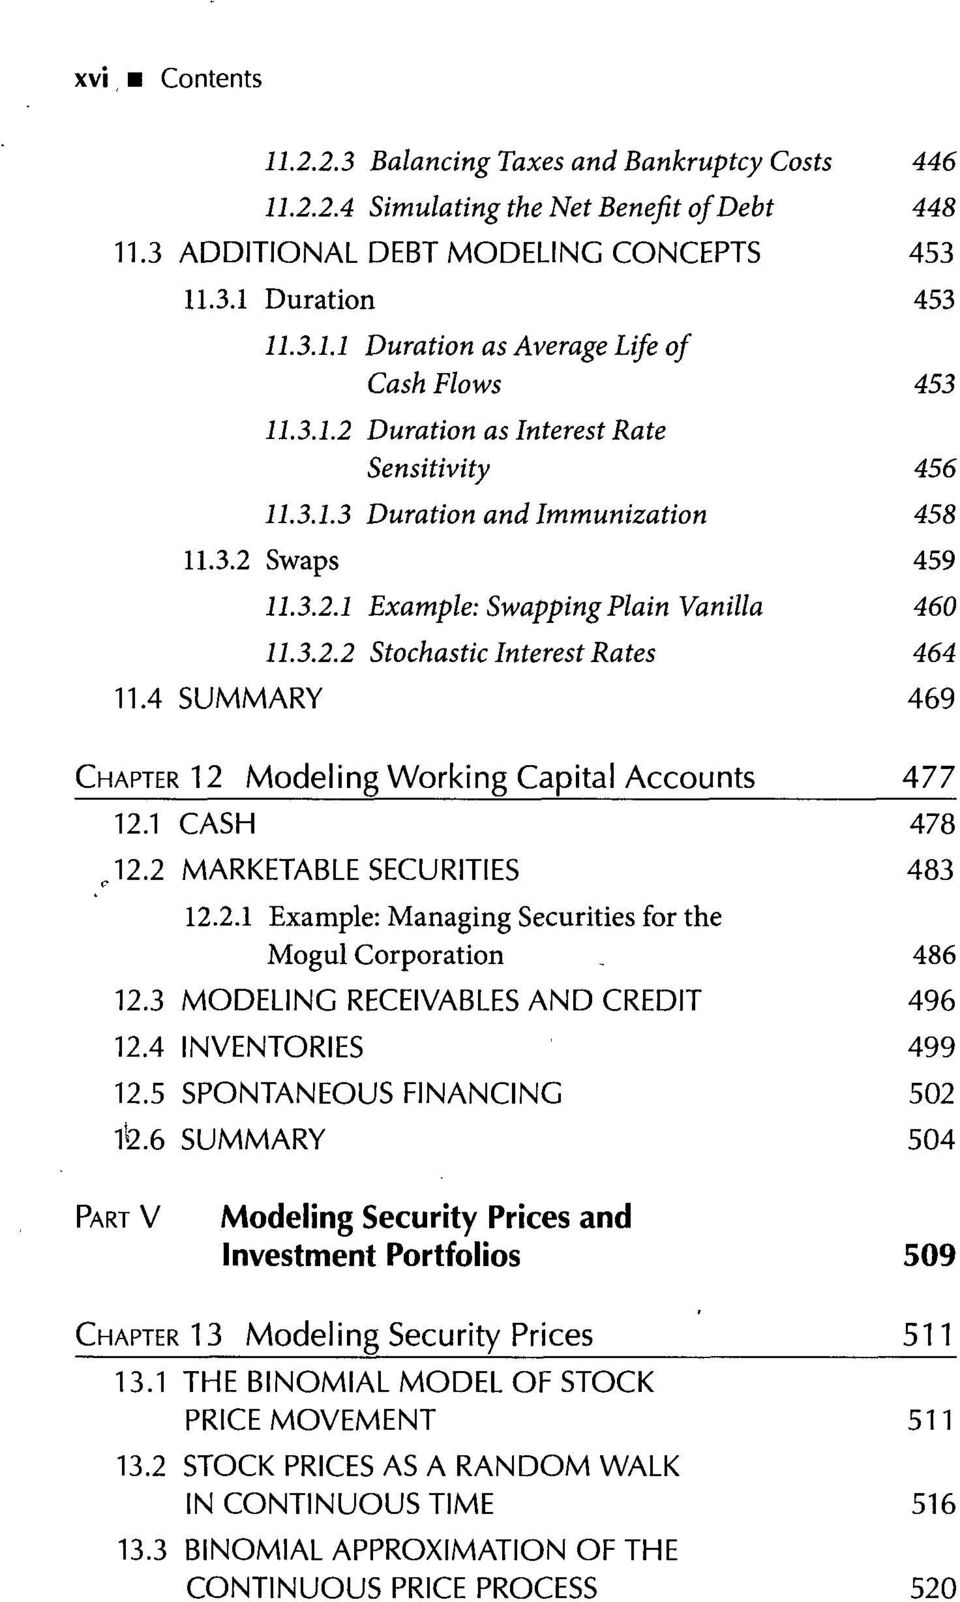 4 SUMMARY 469 CHAPTER 12 Modeling Working Capital Accounts 477 12.1 CASH J2.2 MARKETABLE SECURITIES 12.2.1 Example: Managing Securities for the Mogul Corporation 12.